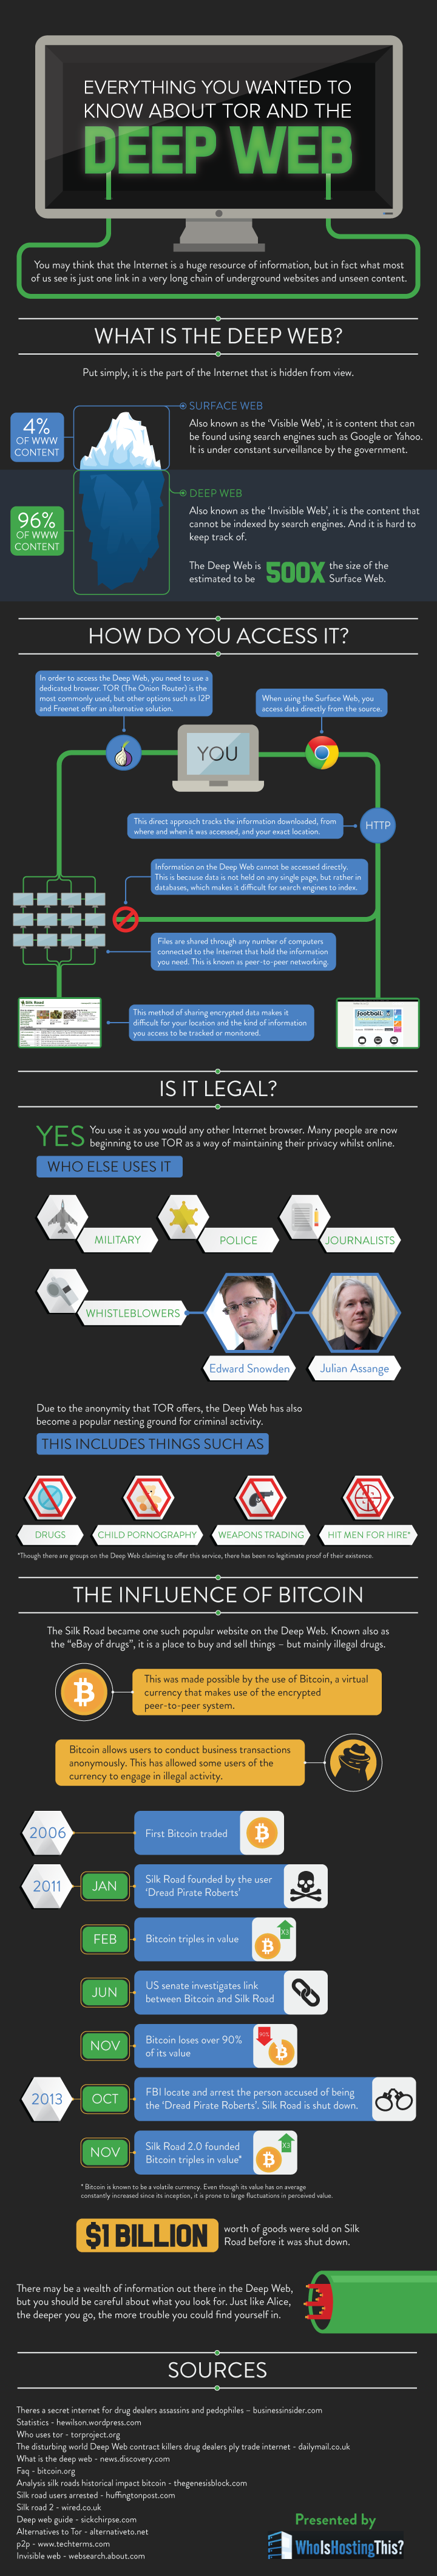 The Deep Web [INFOGRAPHIC]